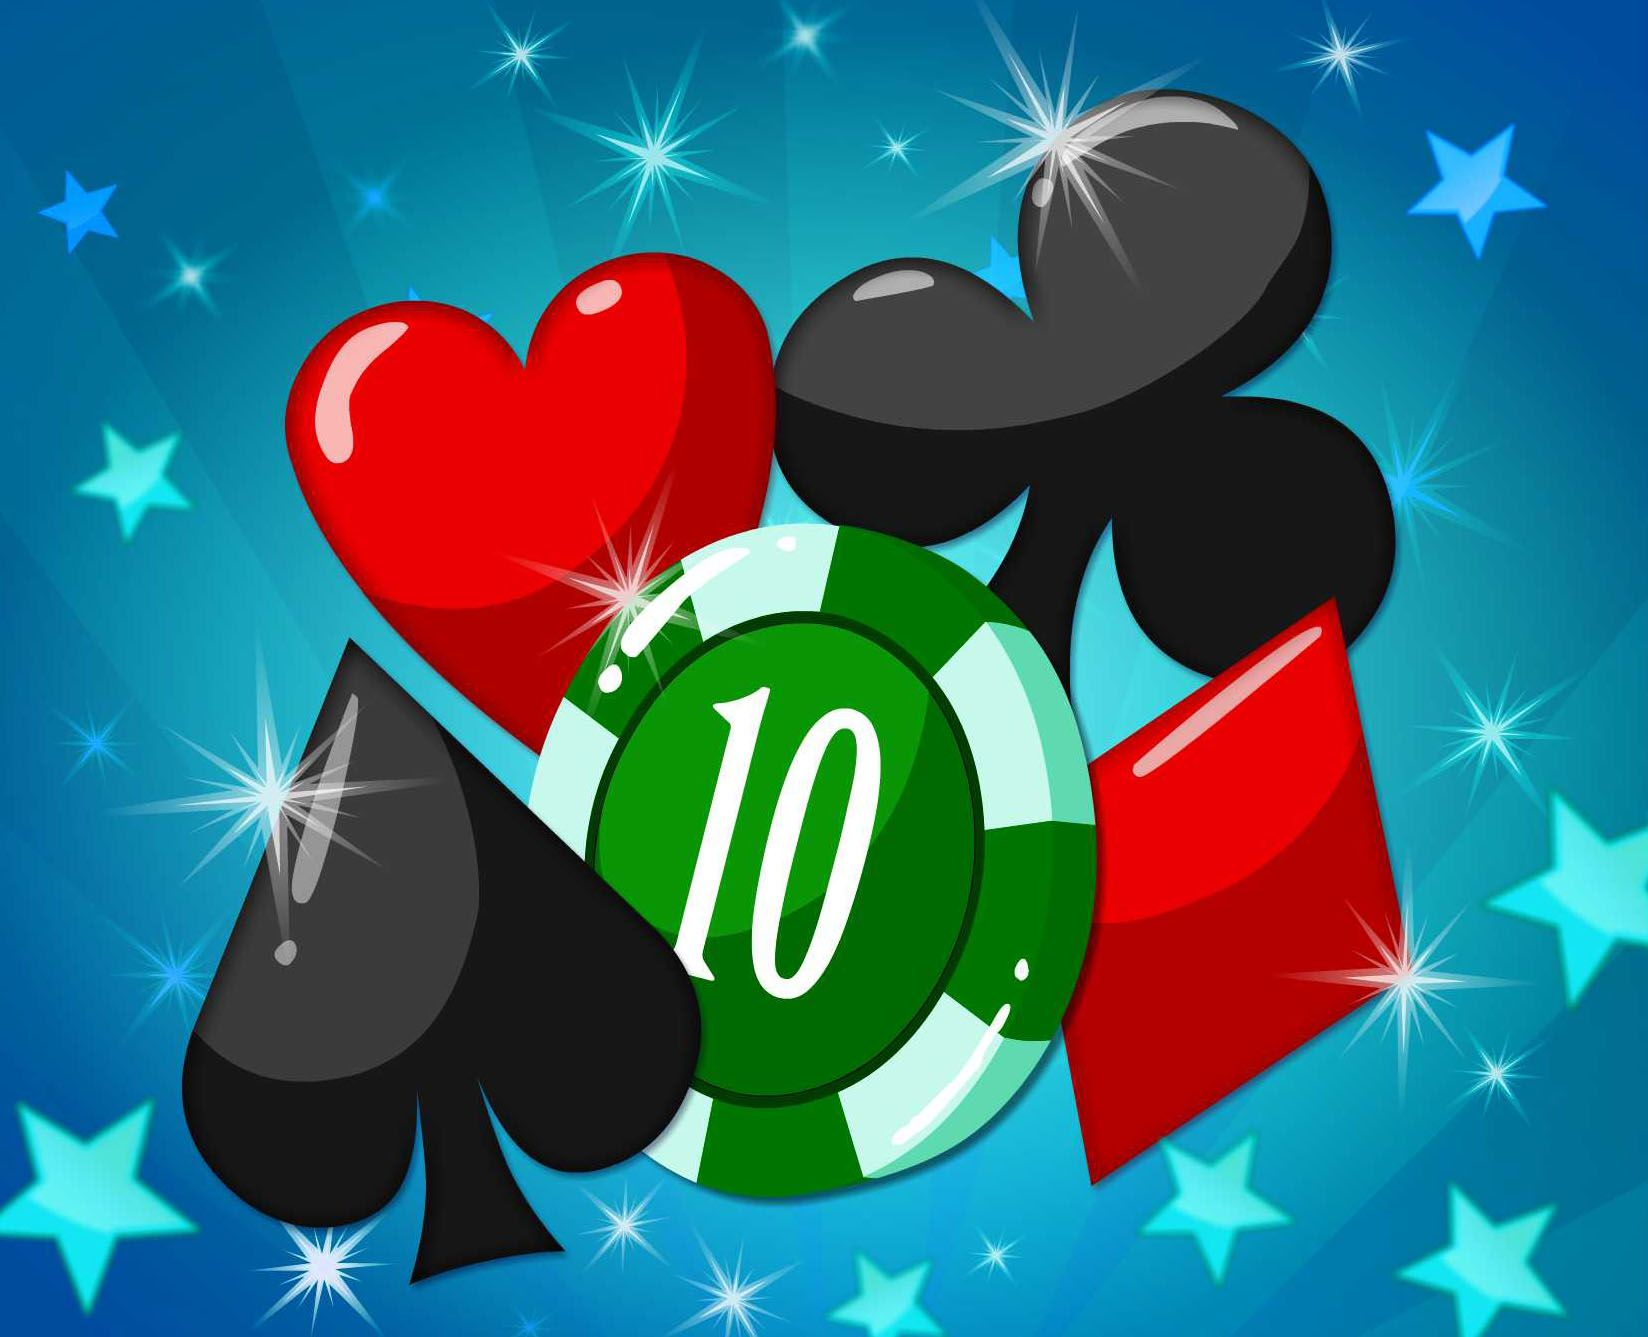 Hello poker players what do you like the most about this